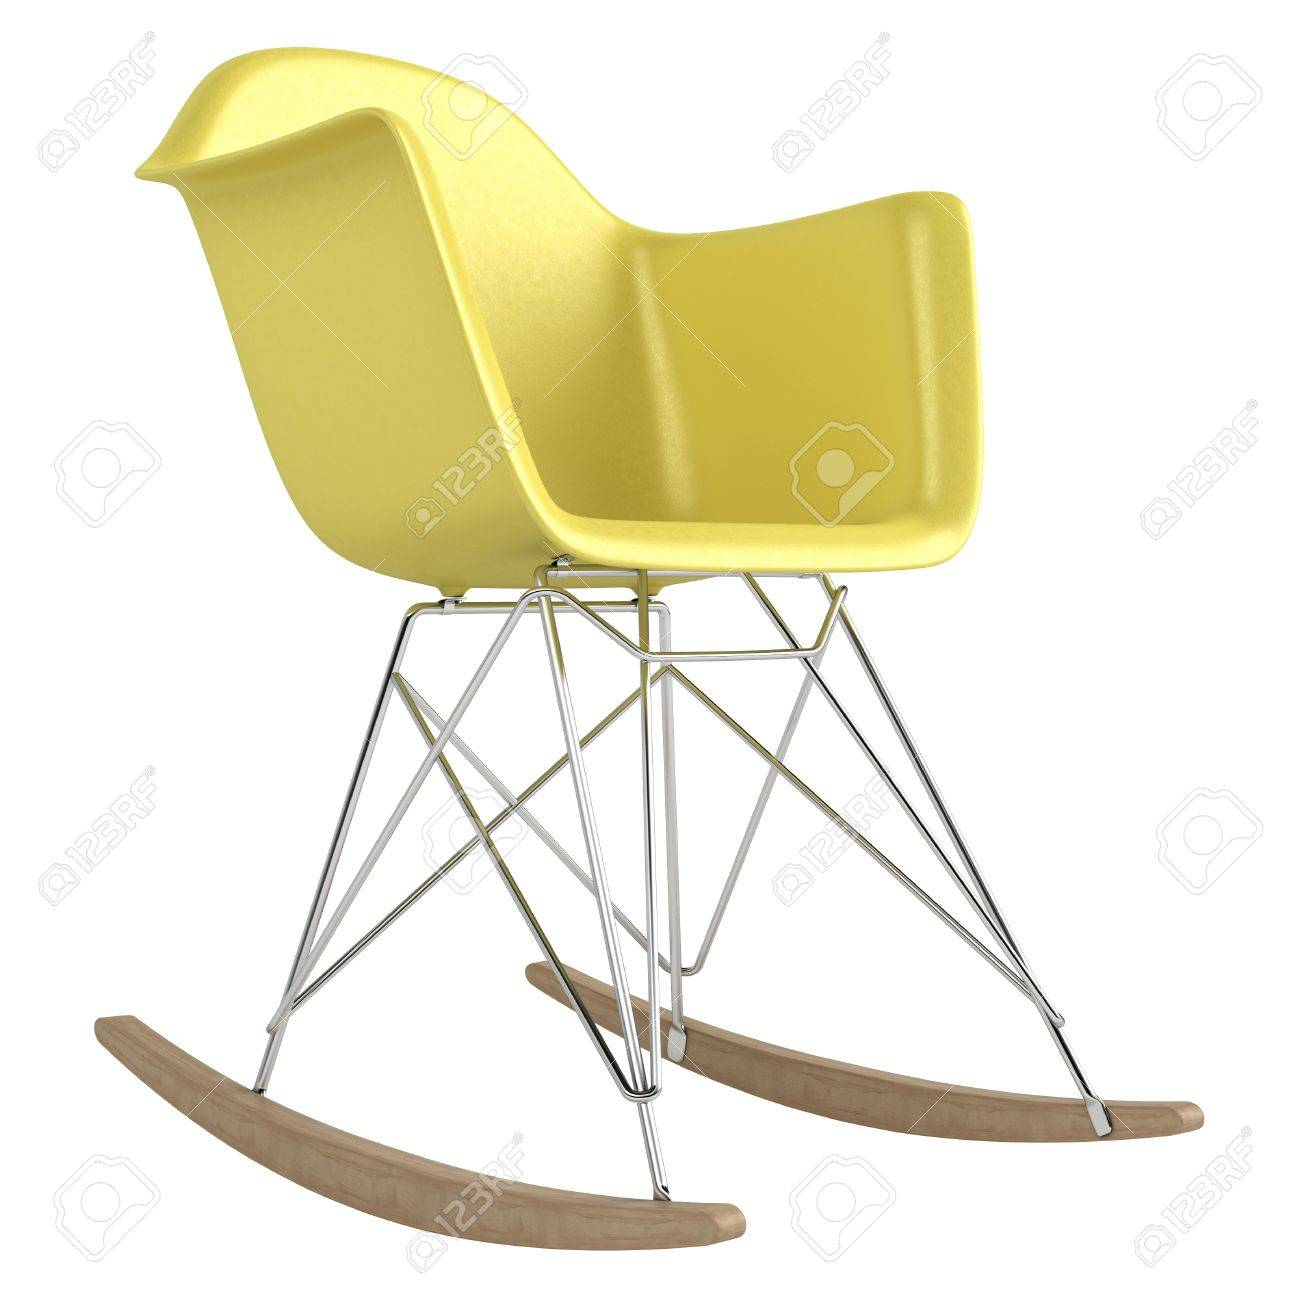 Innovative Rocking Chair Design With A Modular Seat Metal Frame